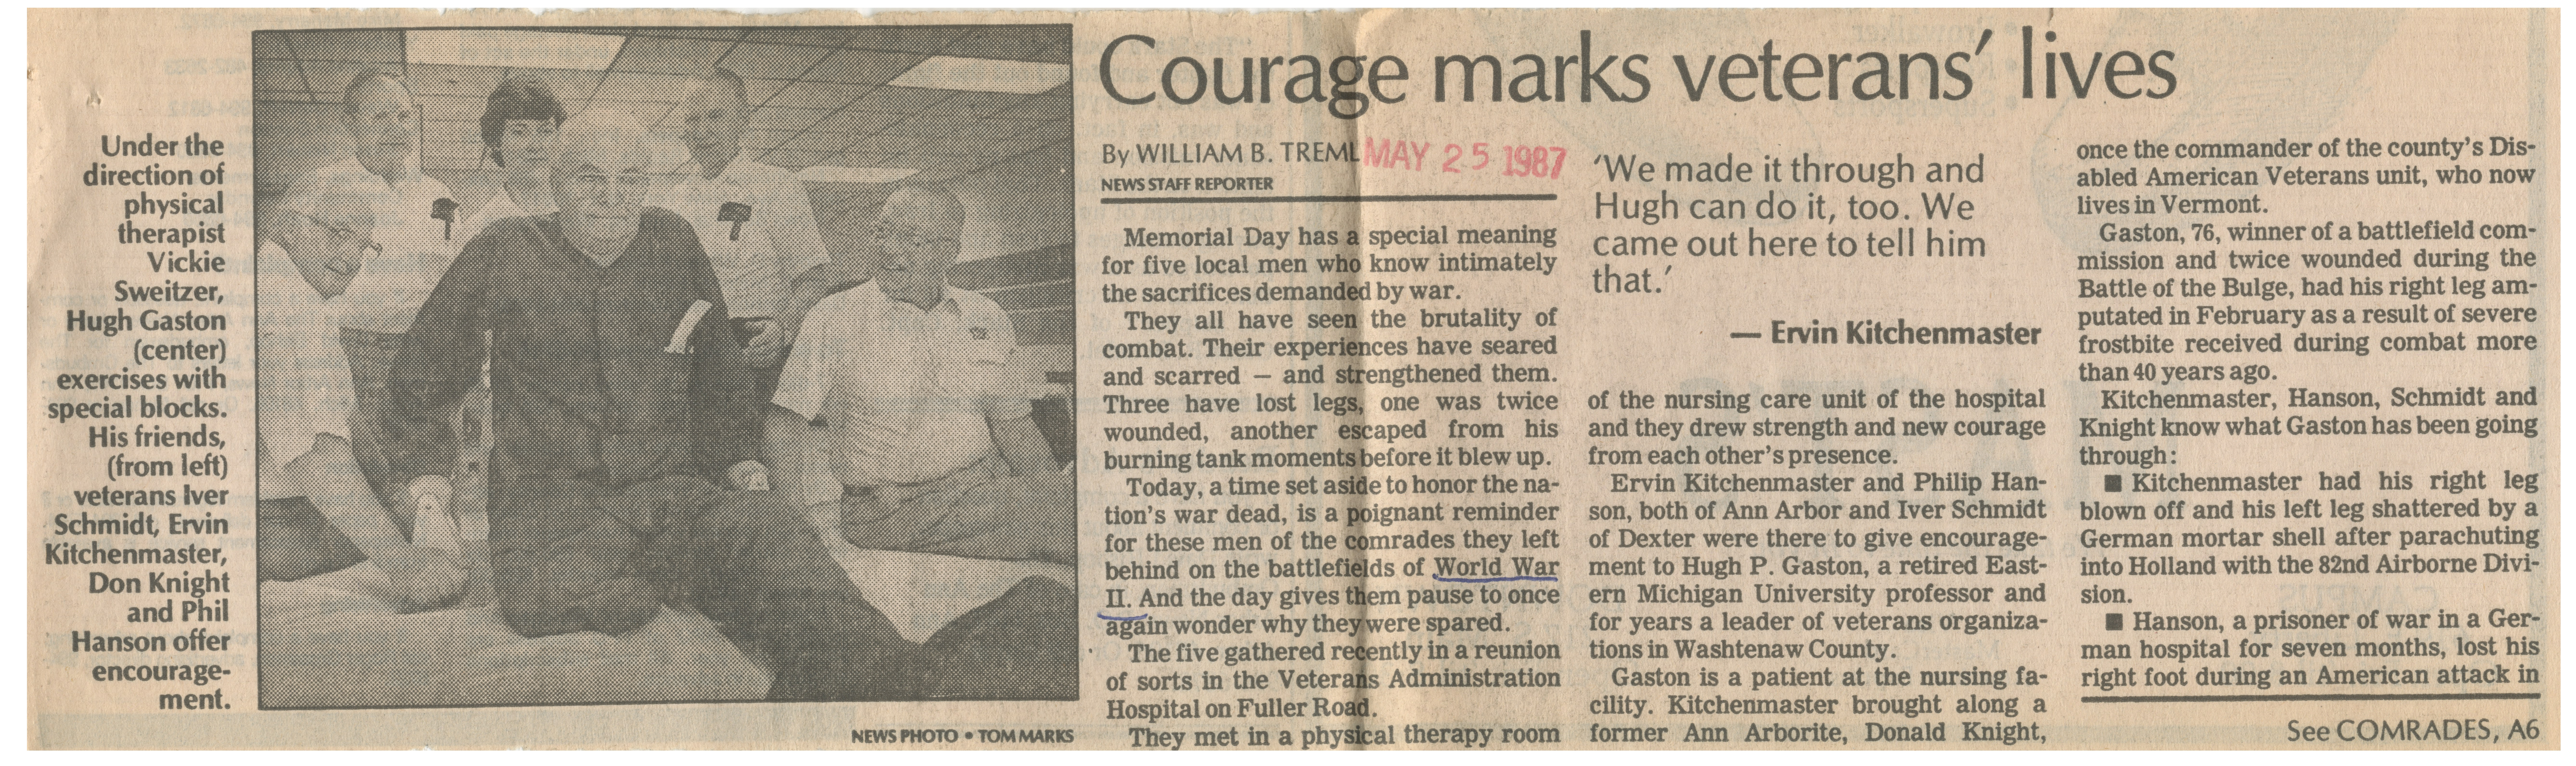 Courage marks veterans' lives image